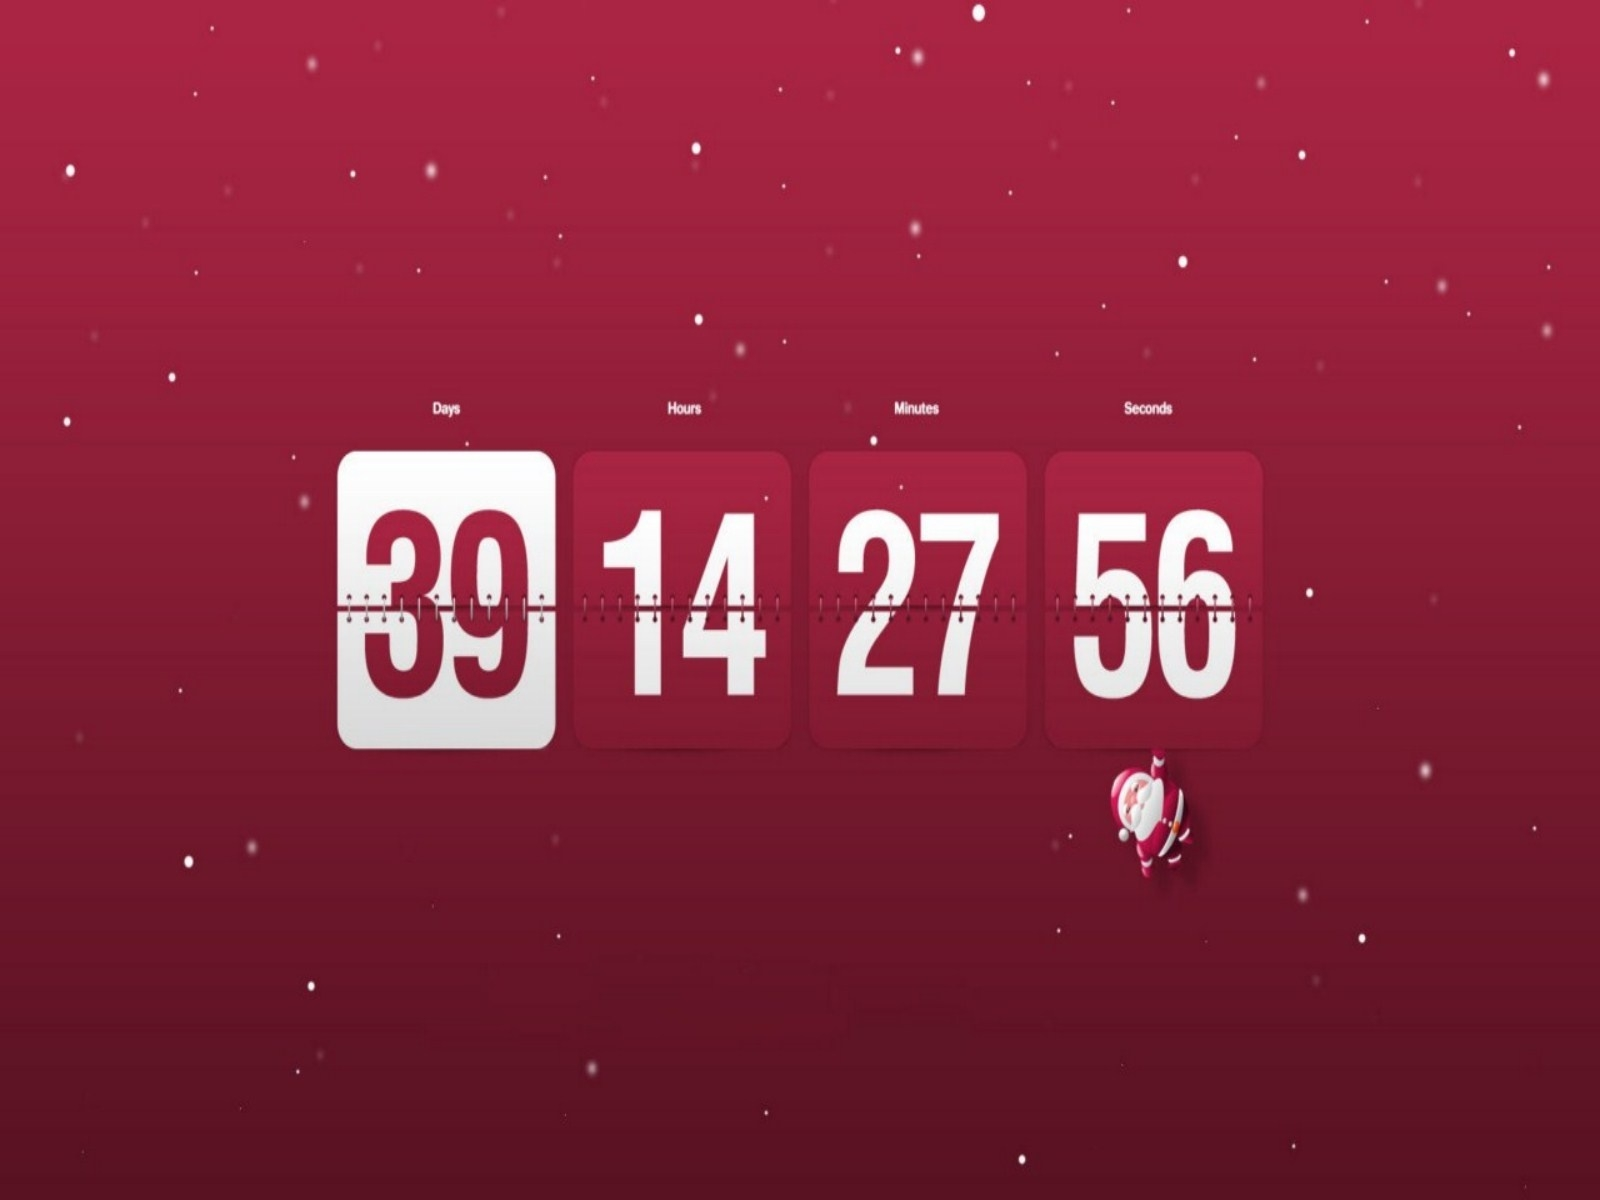 49+] Desktop Wallpaper Countdown Timer On Wallpapersafari_Countdown Calendar Desktop App